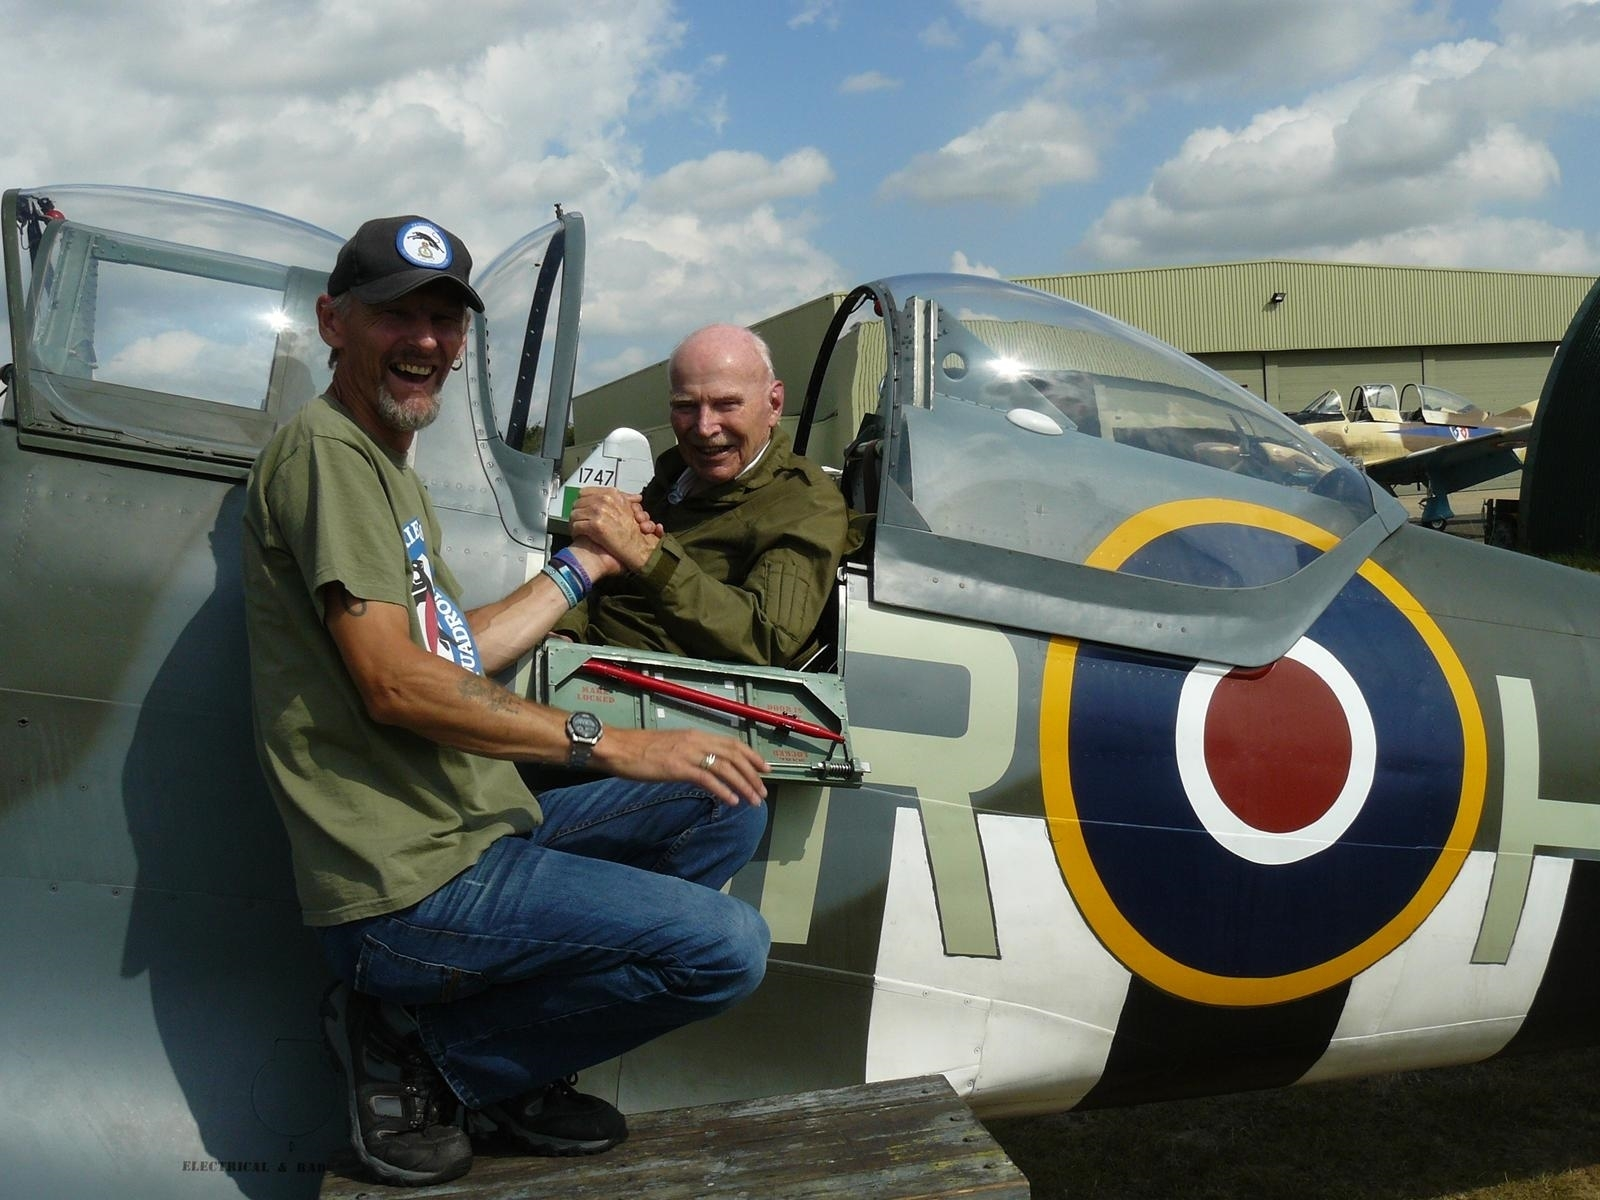 There's still time to visit an exhibition about local heroes who took part in Battle of Britain